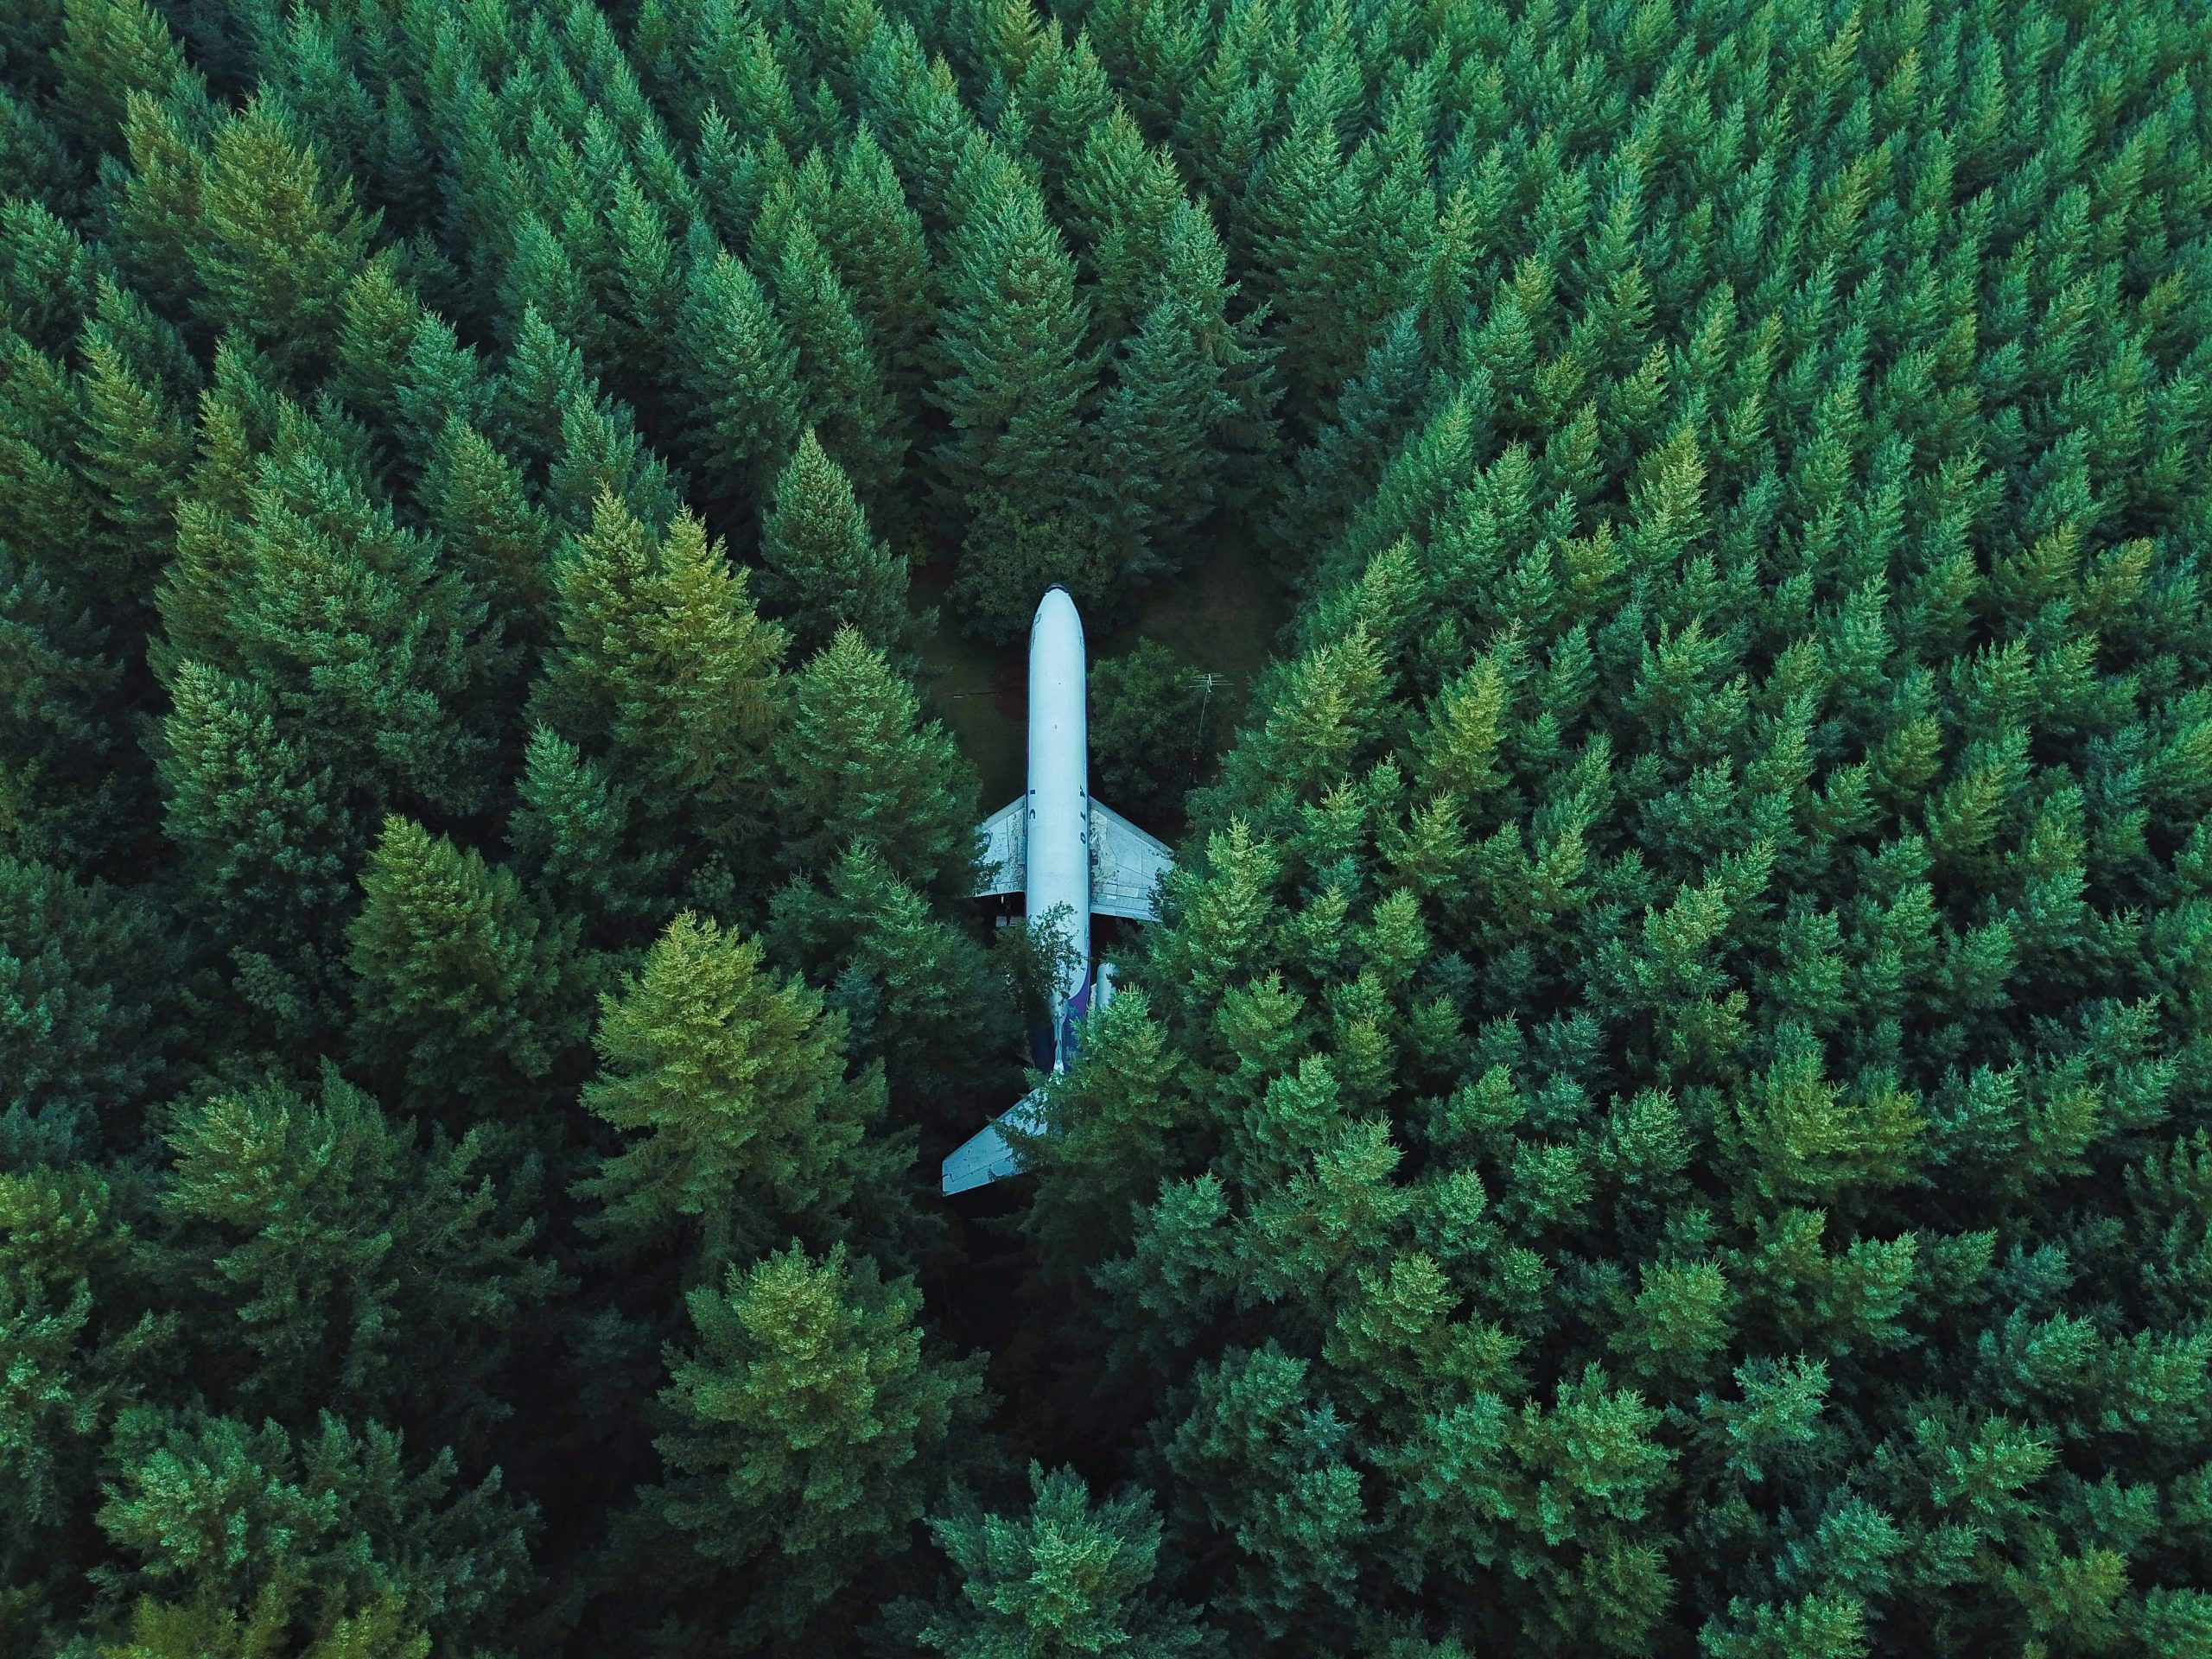 Airplane lost in forest